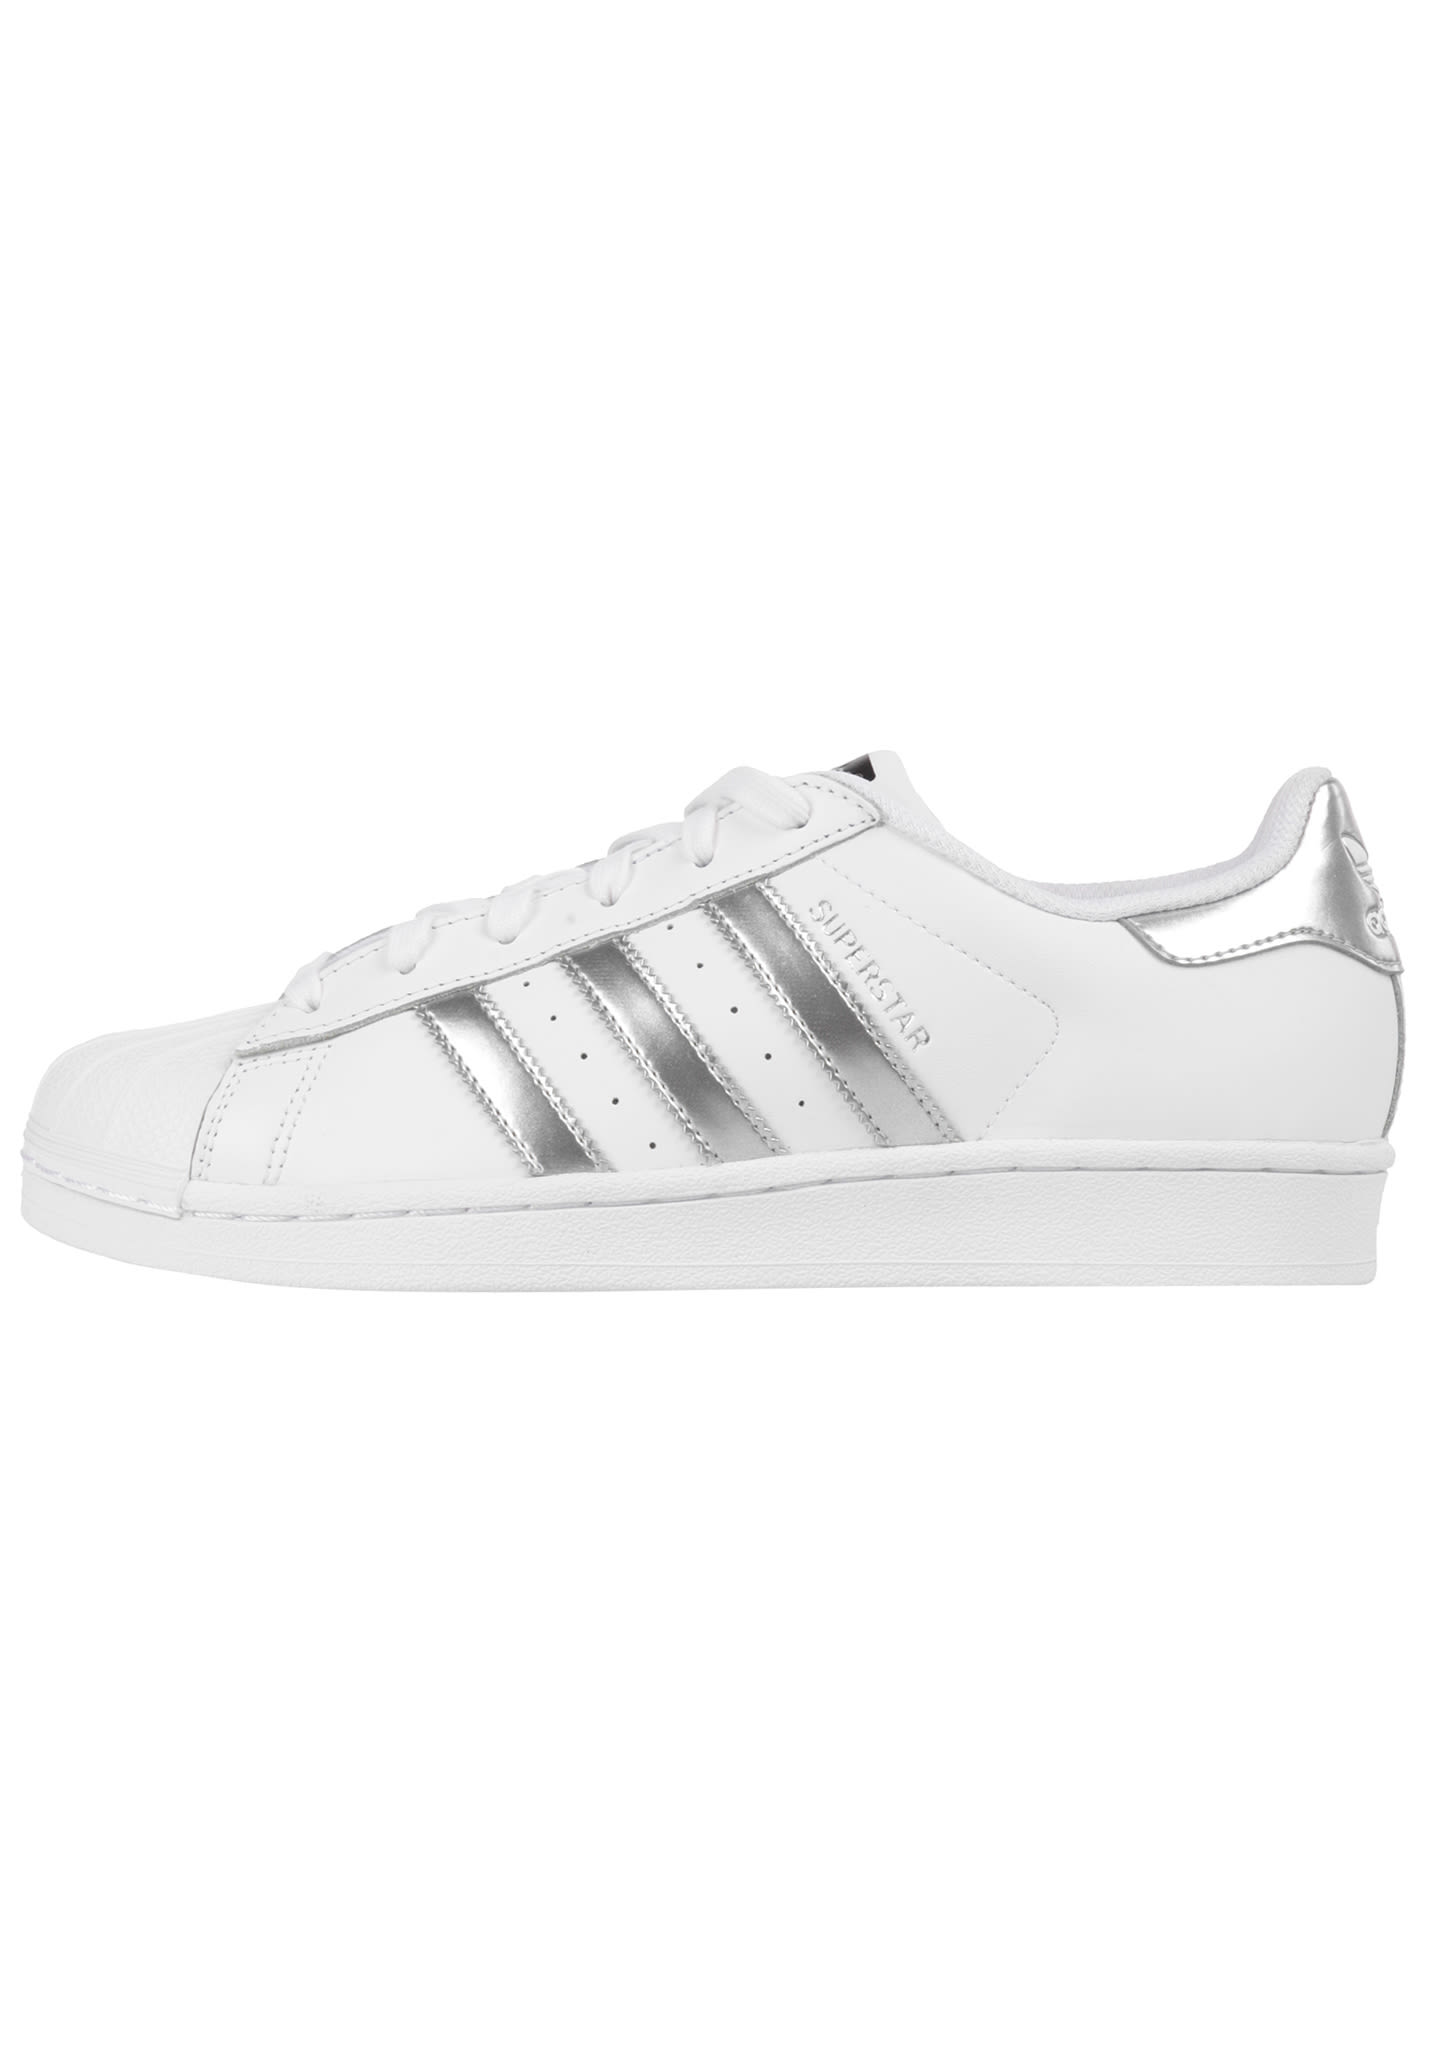 9143d7175c1 ADIDAS ORIGINALS Superstar - Sneakers for Women - White - Planet Sports